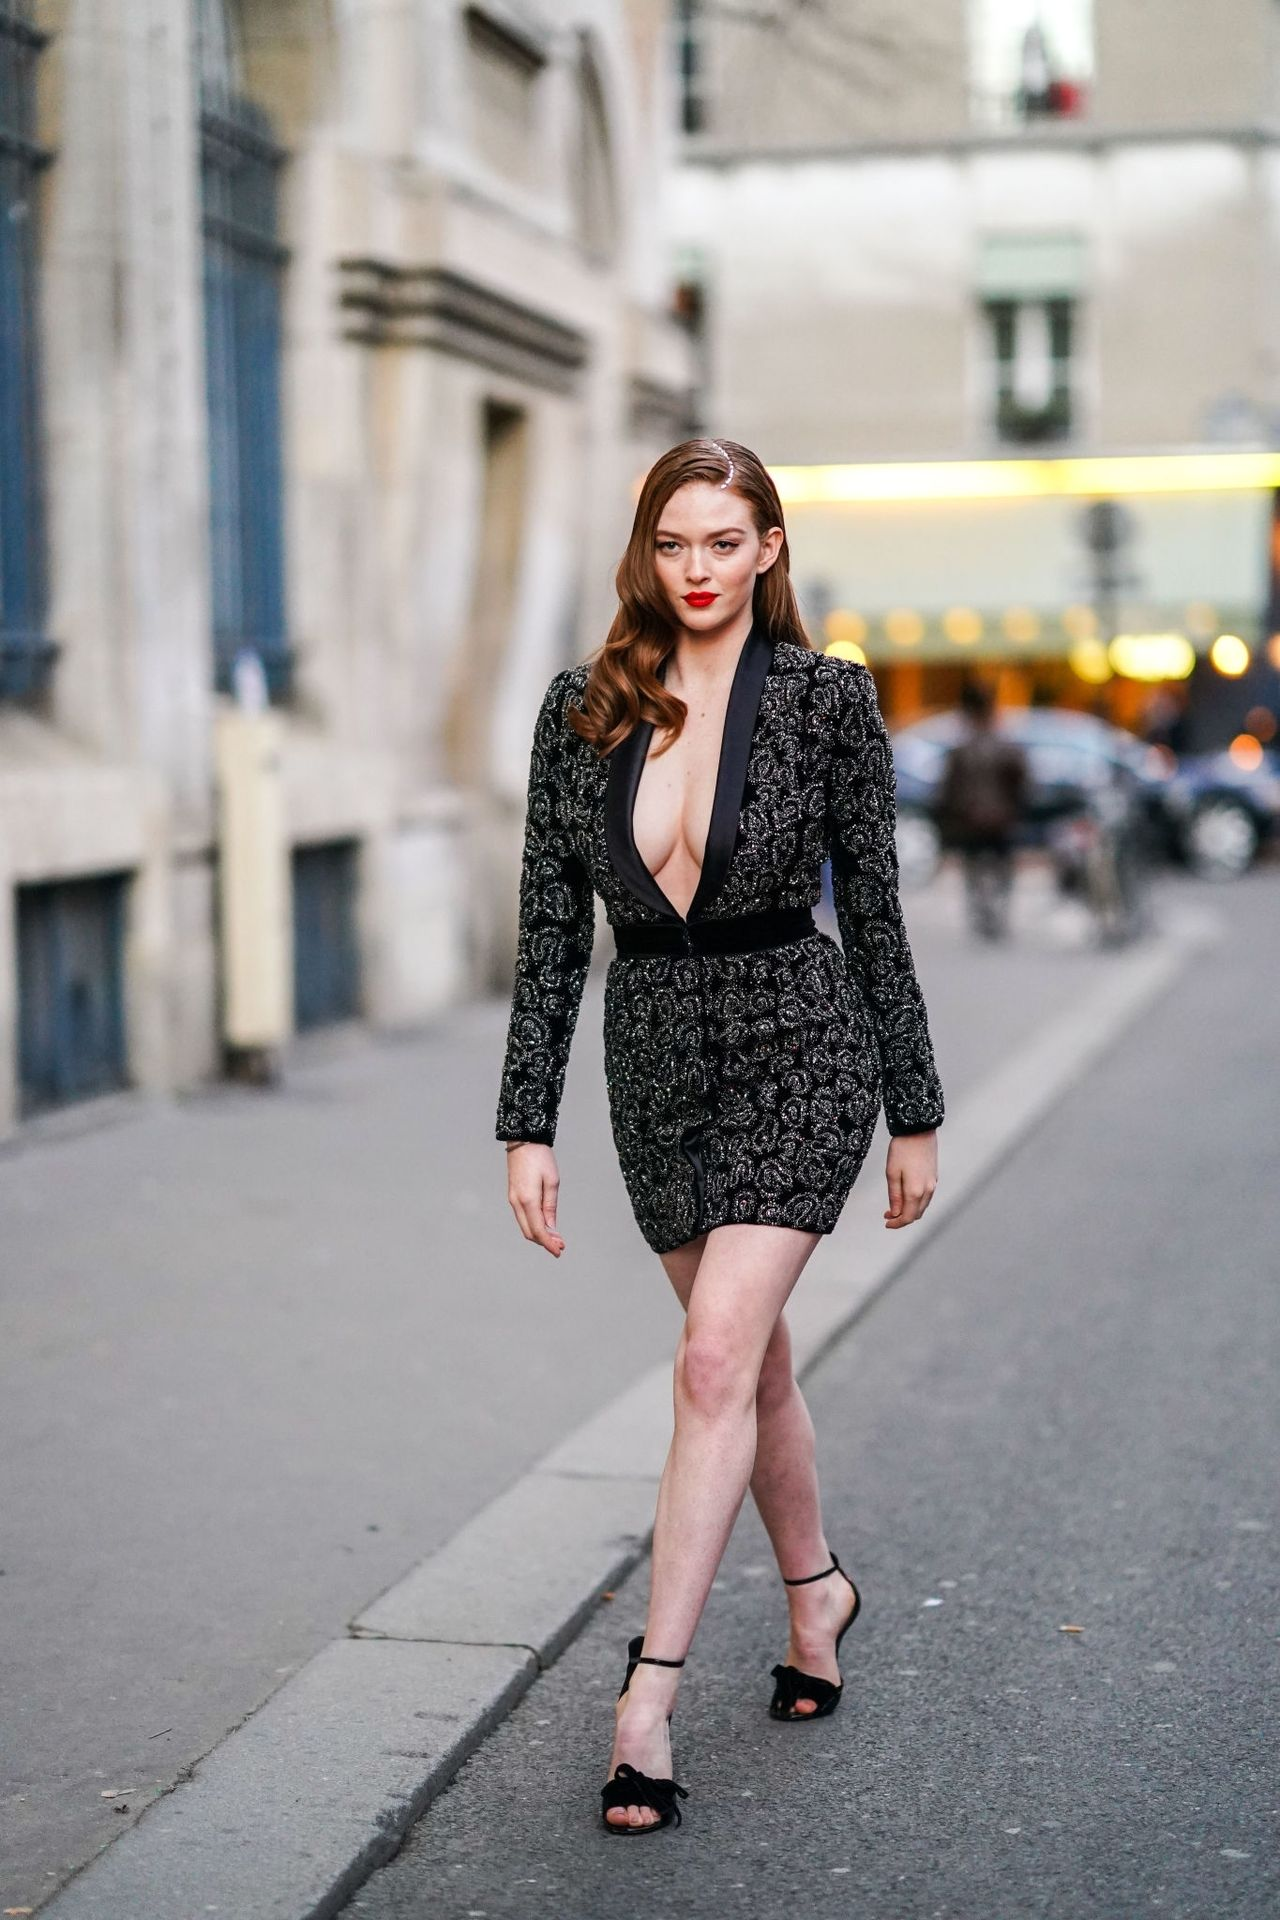 Larsen Thompson Wows With Her Tits At The Fashion Show 0012